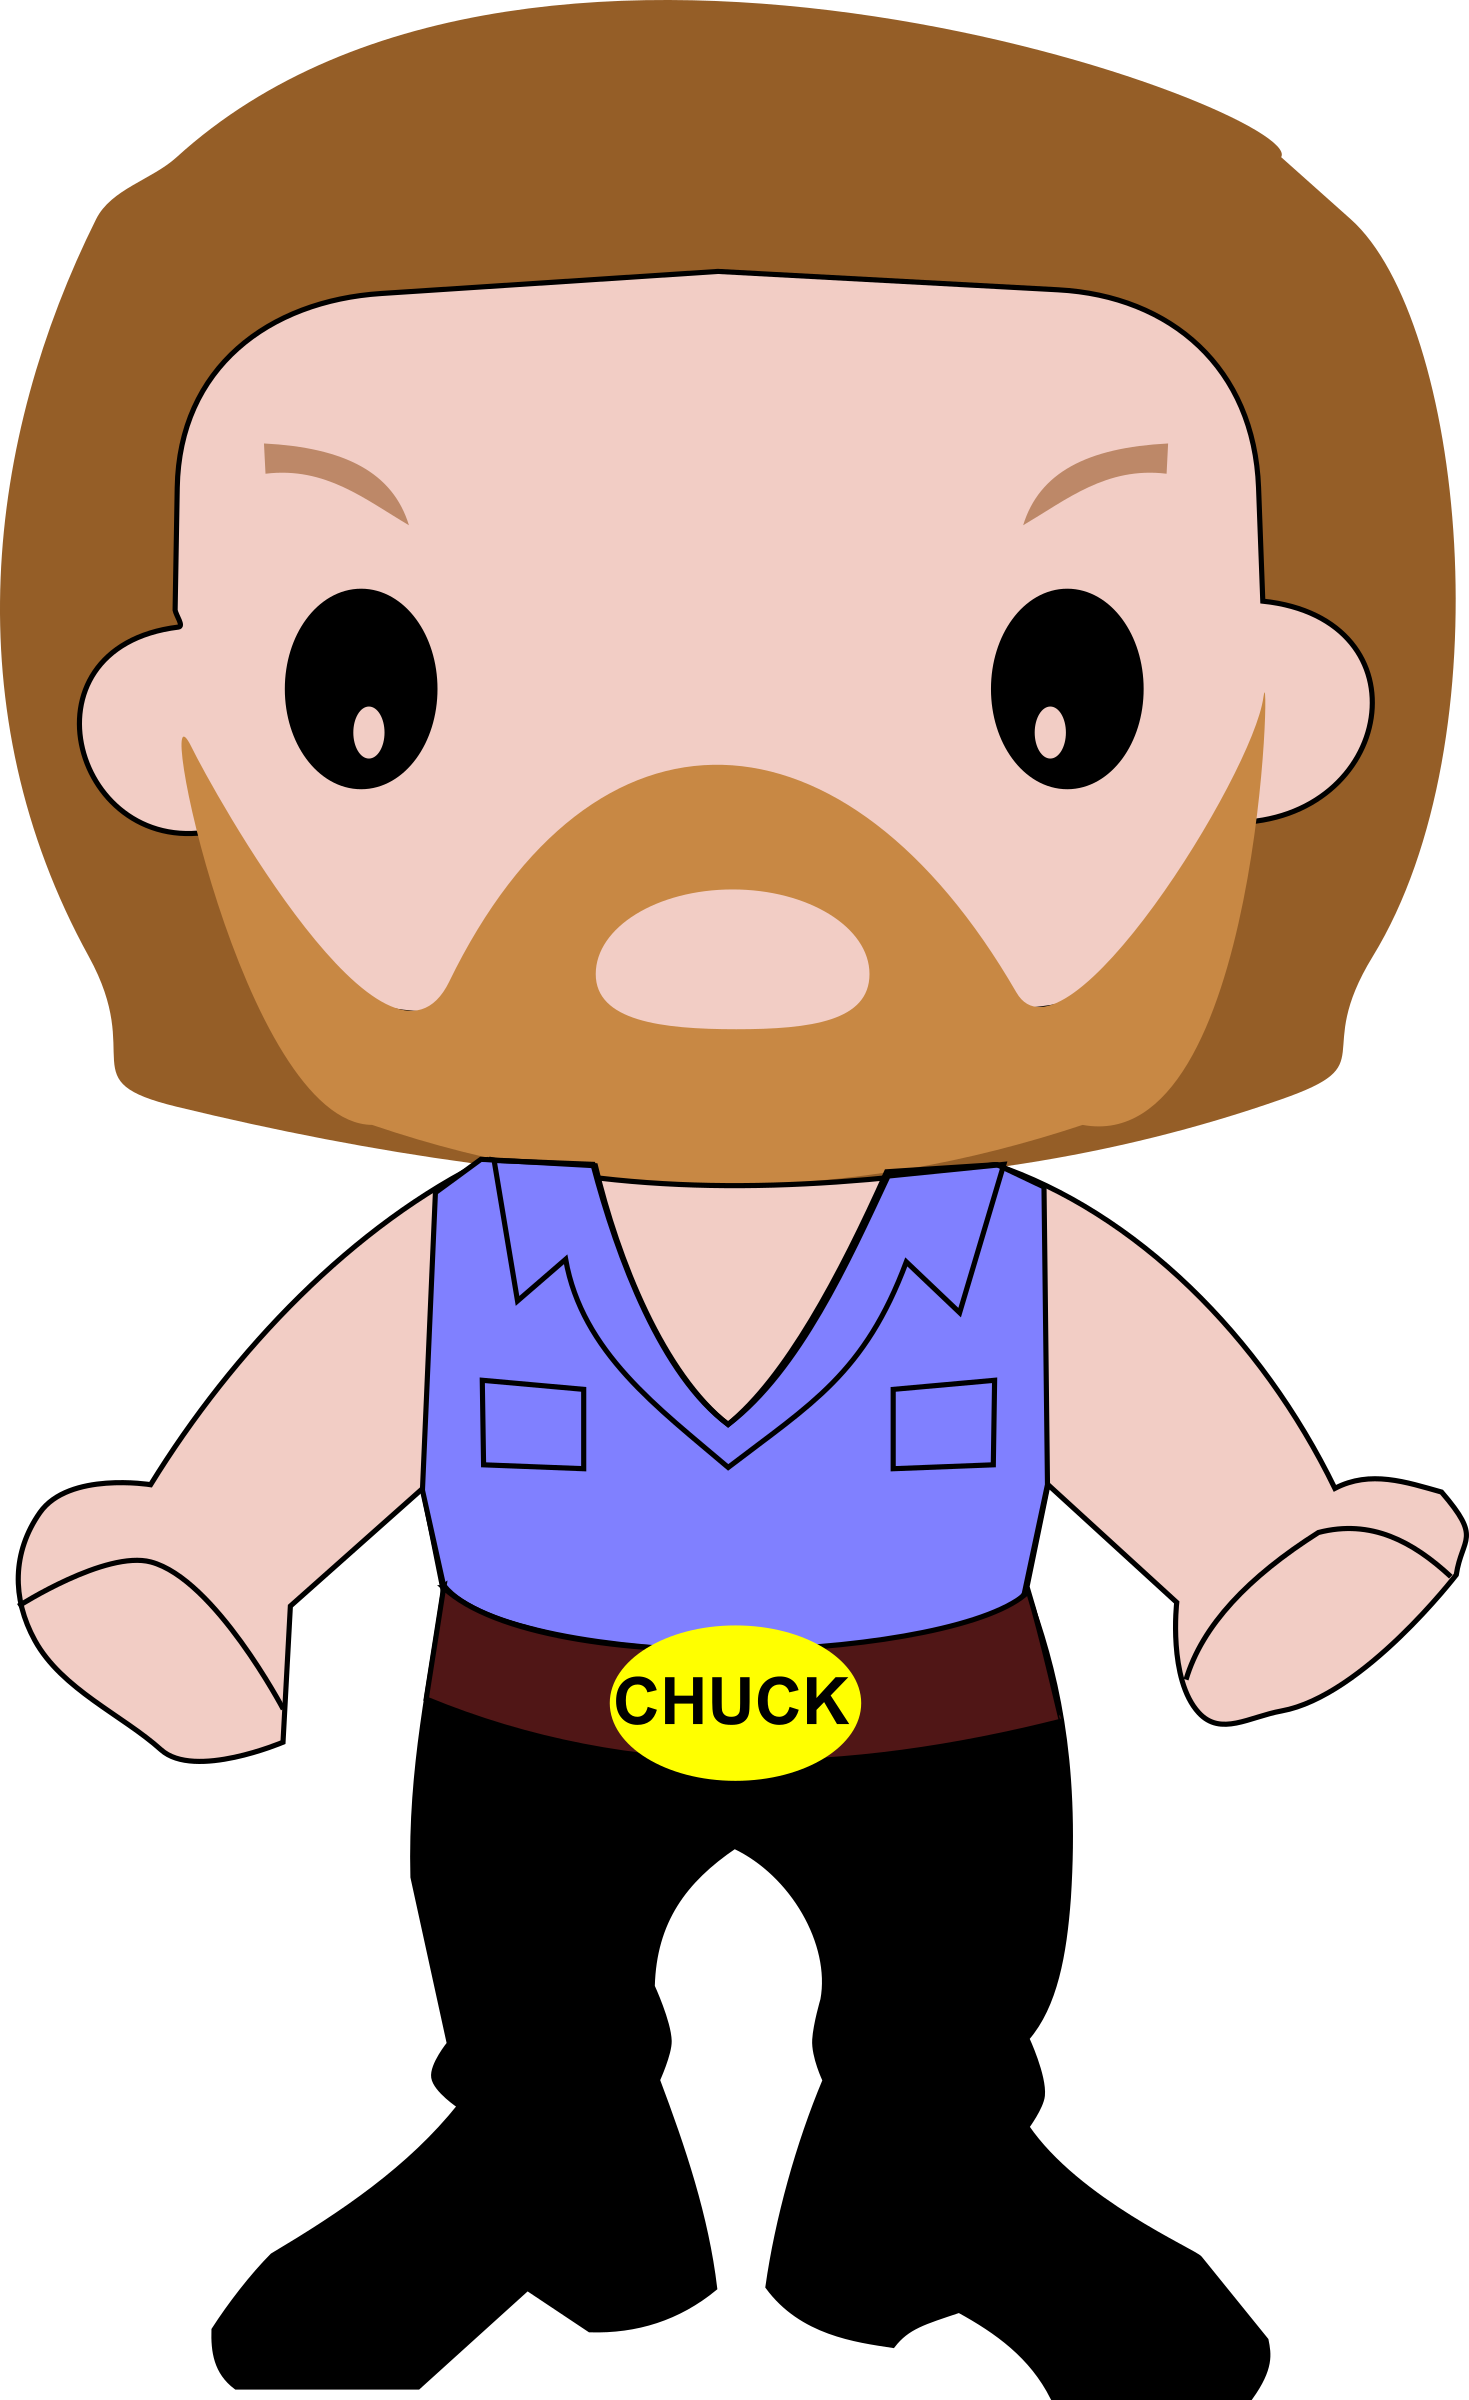 Free Photos U003e Vector Images U003e Chuck Norris Vector Cartoon Clipart Hdclipartall.com